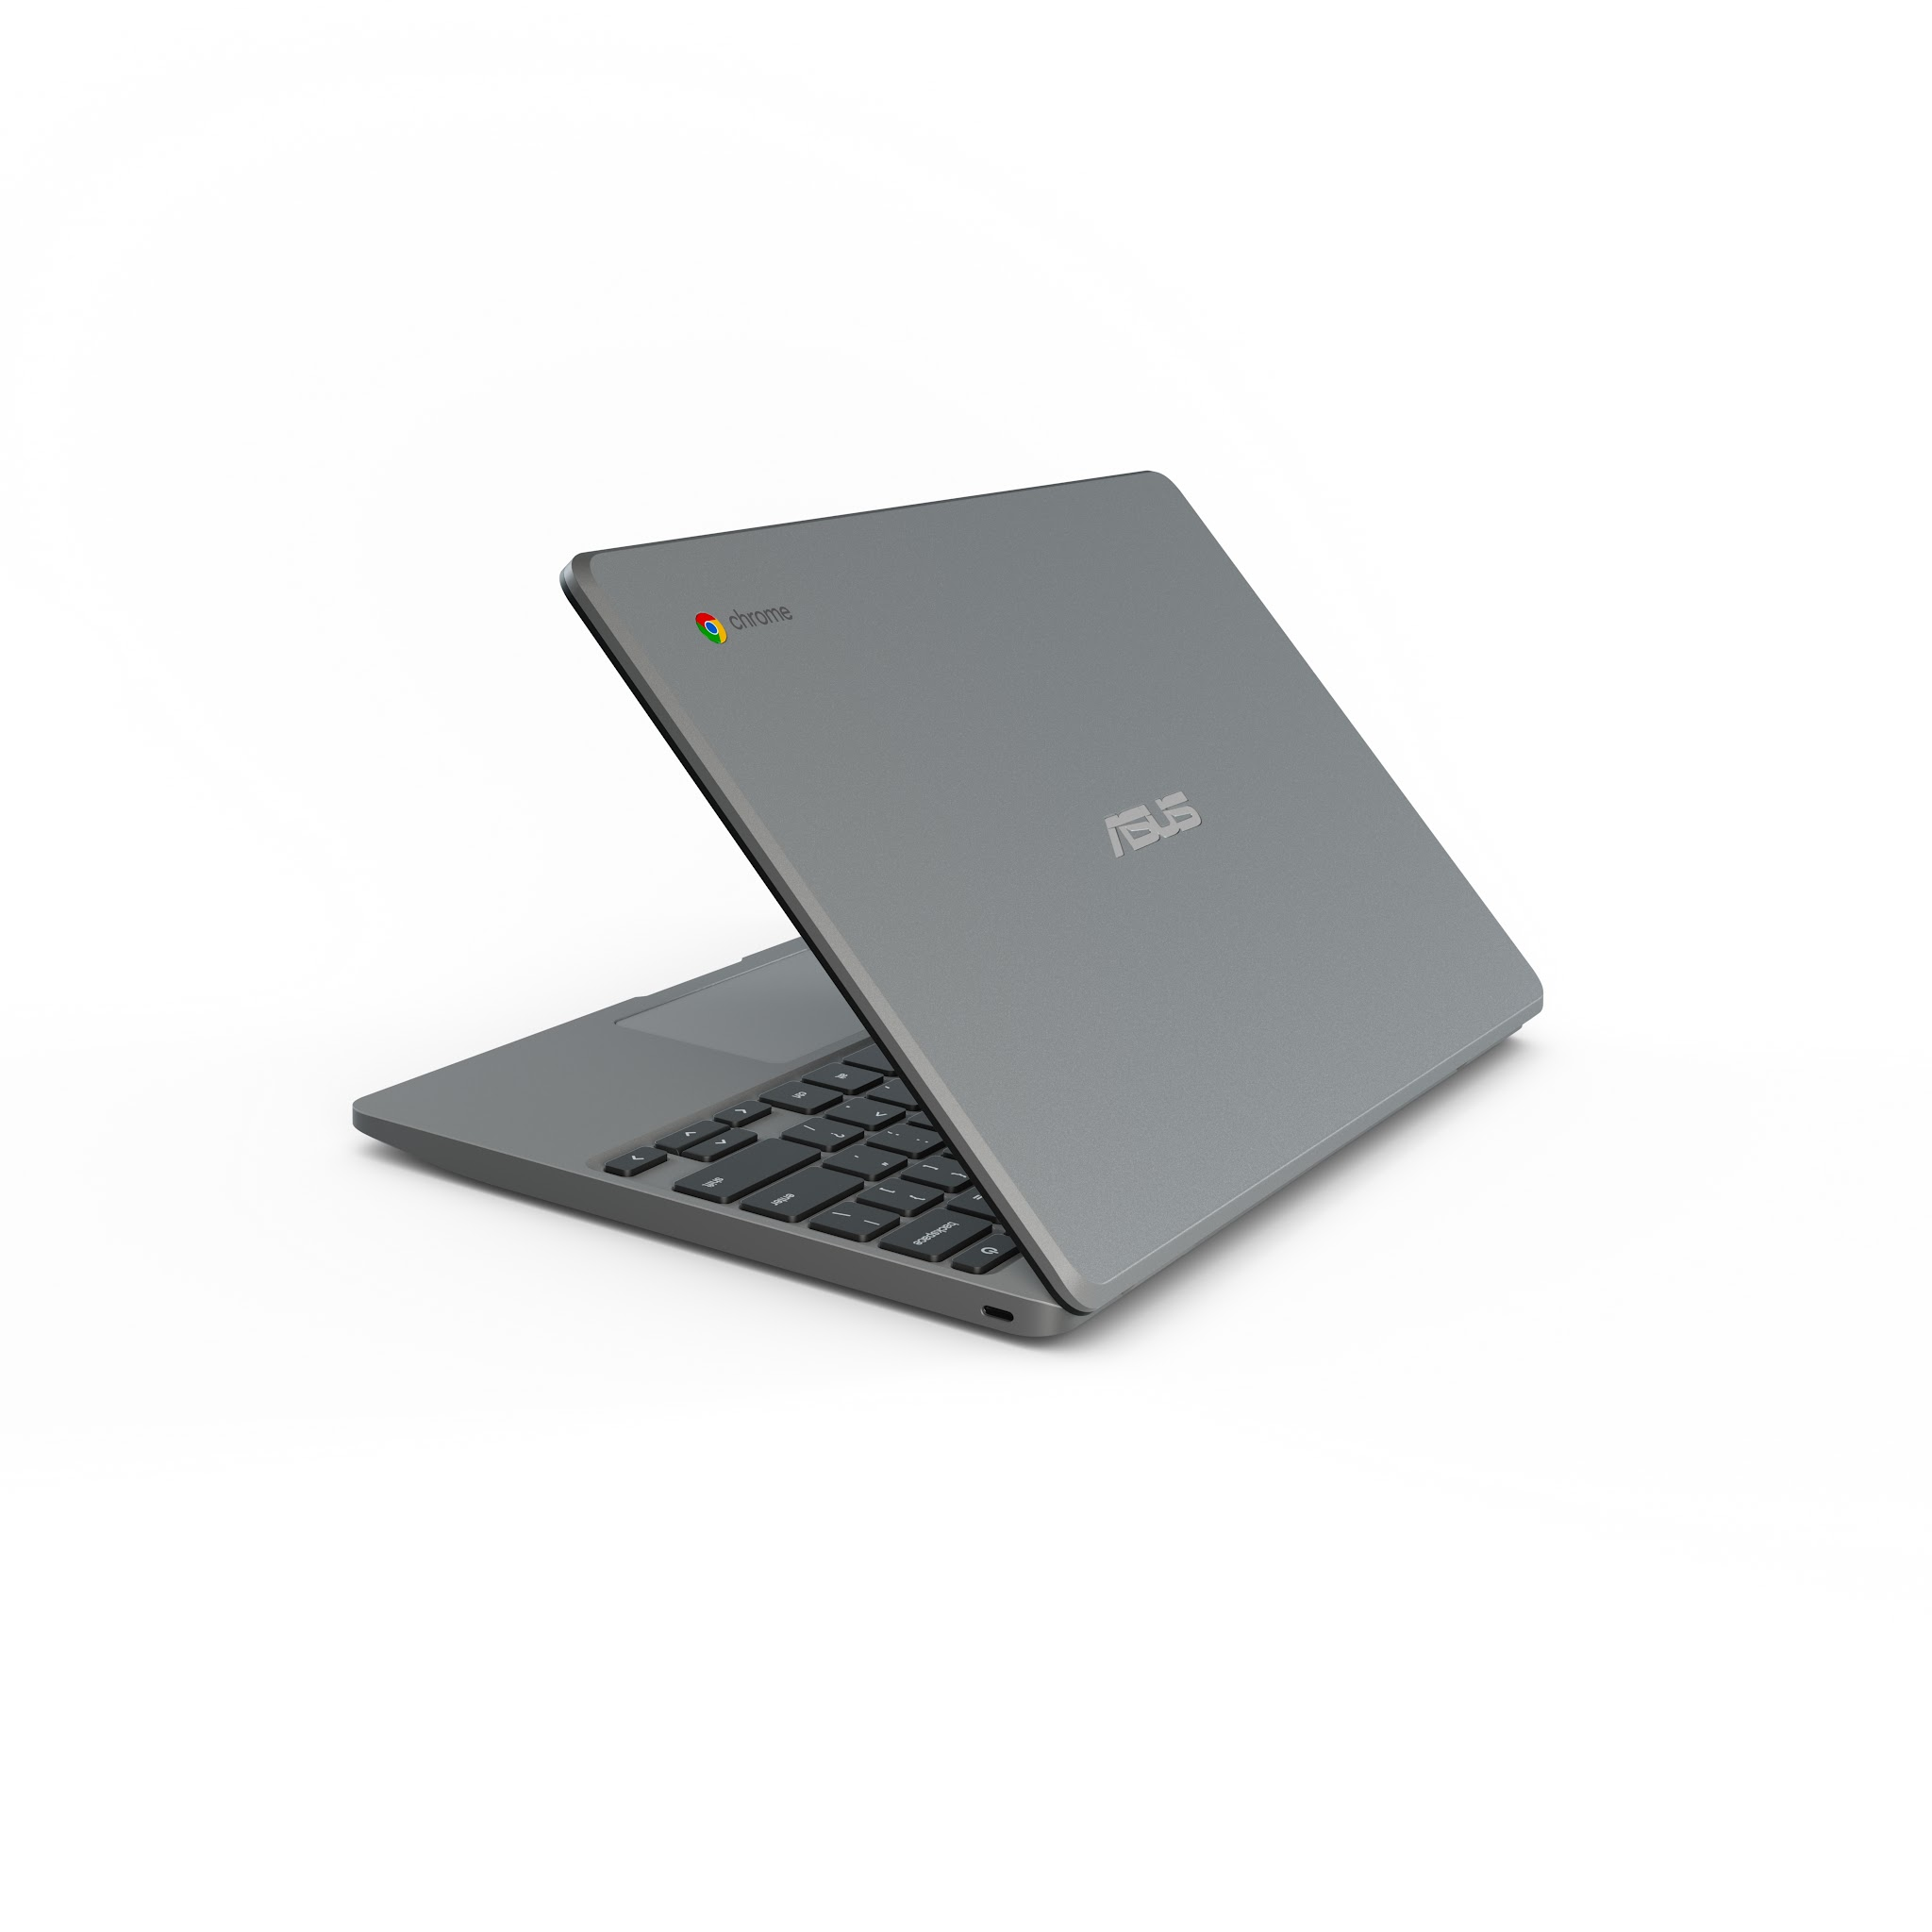 ASUS Chromebook C223 - photo 5